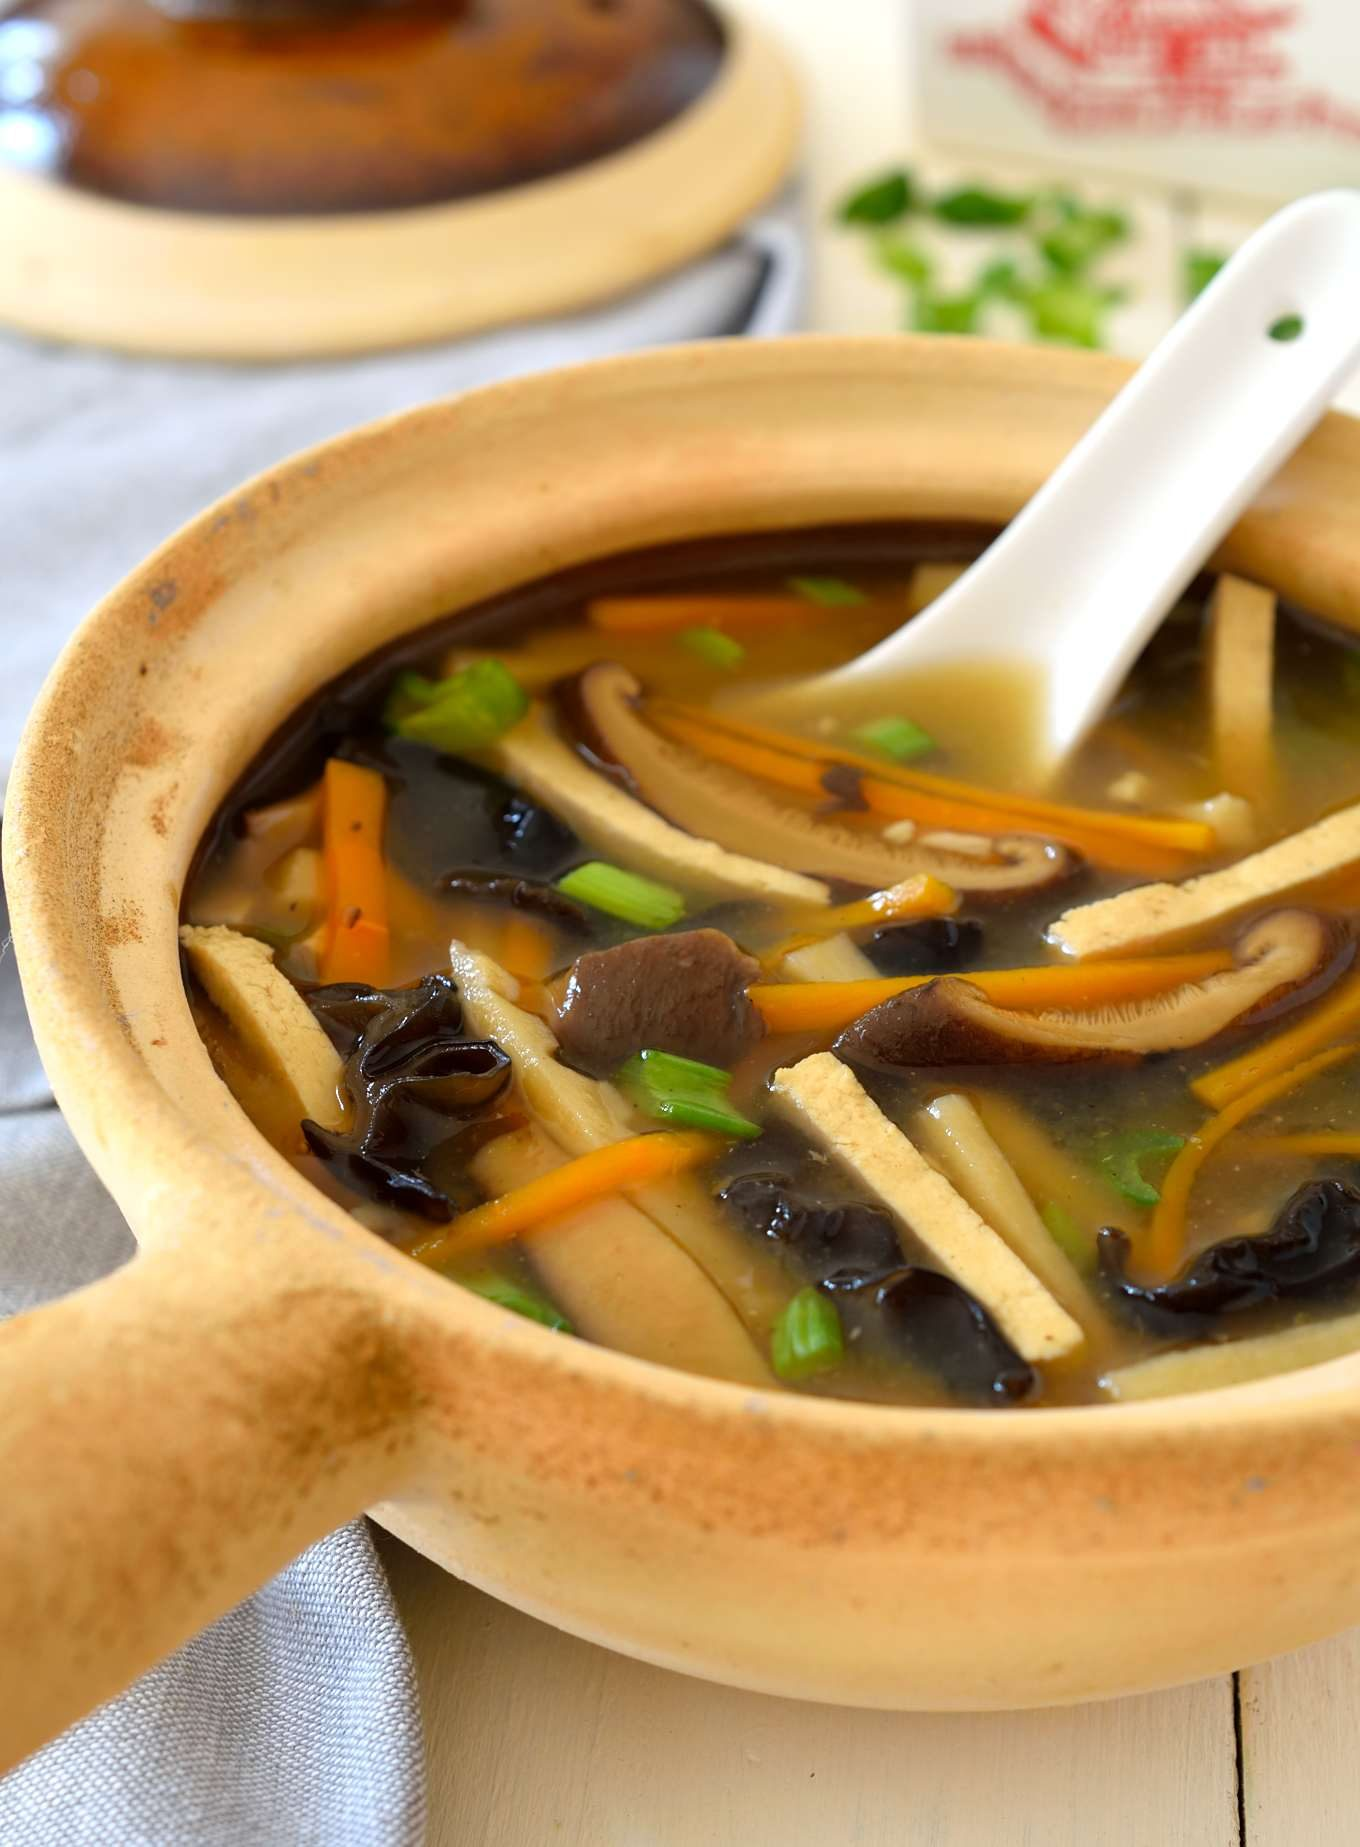 Vegan hot and sour soup is just as tasty as takeout and guaranteed to be totally plant-based. Great for a chilly fall or winter evening, this soup is ready in only 40 minutes.